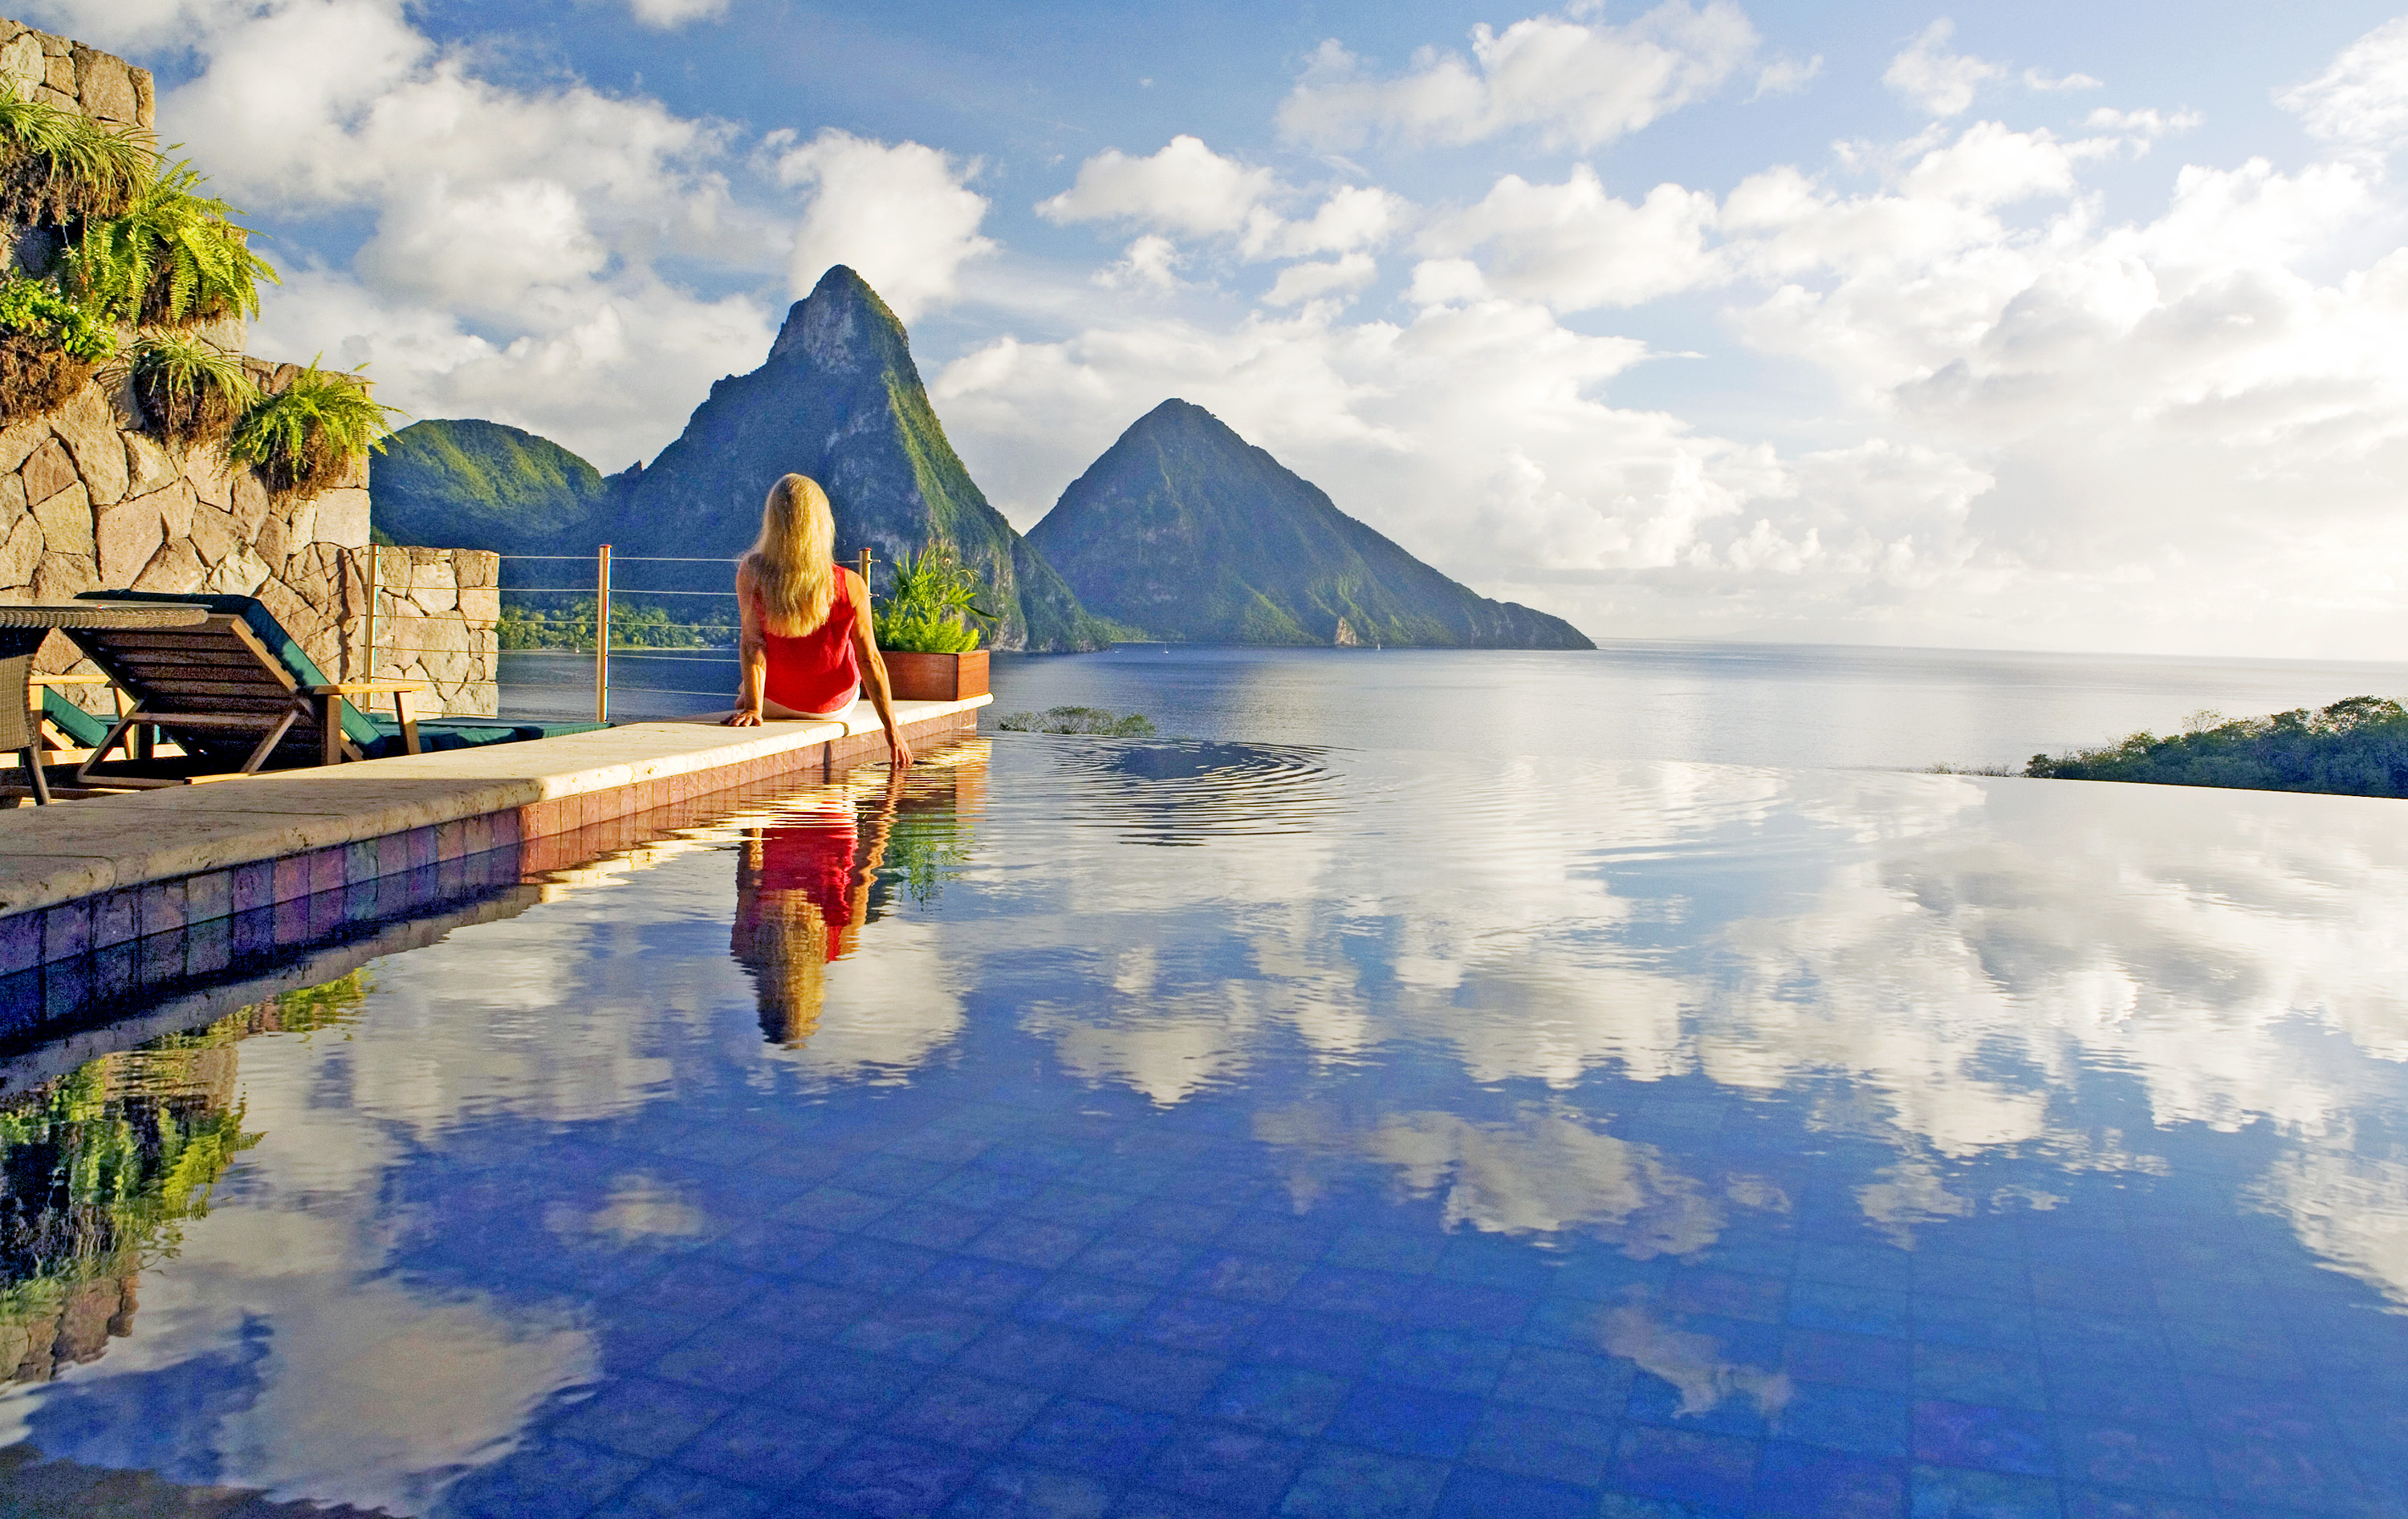 jade mountain in jetsetter's sexiest hotels in the world - jade